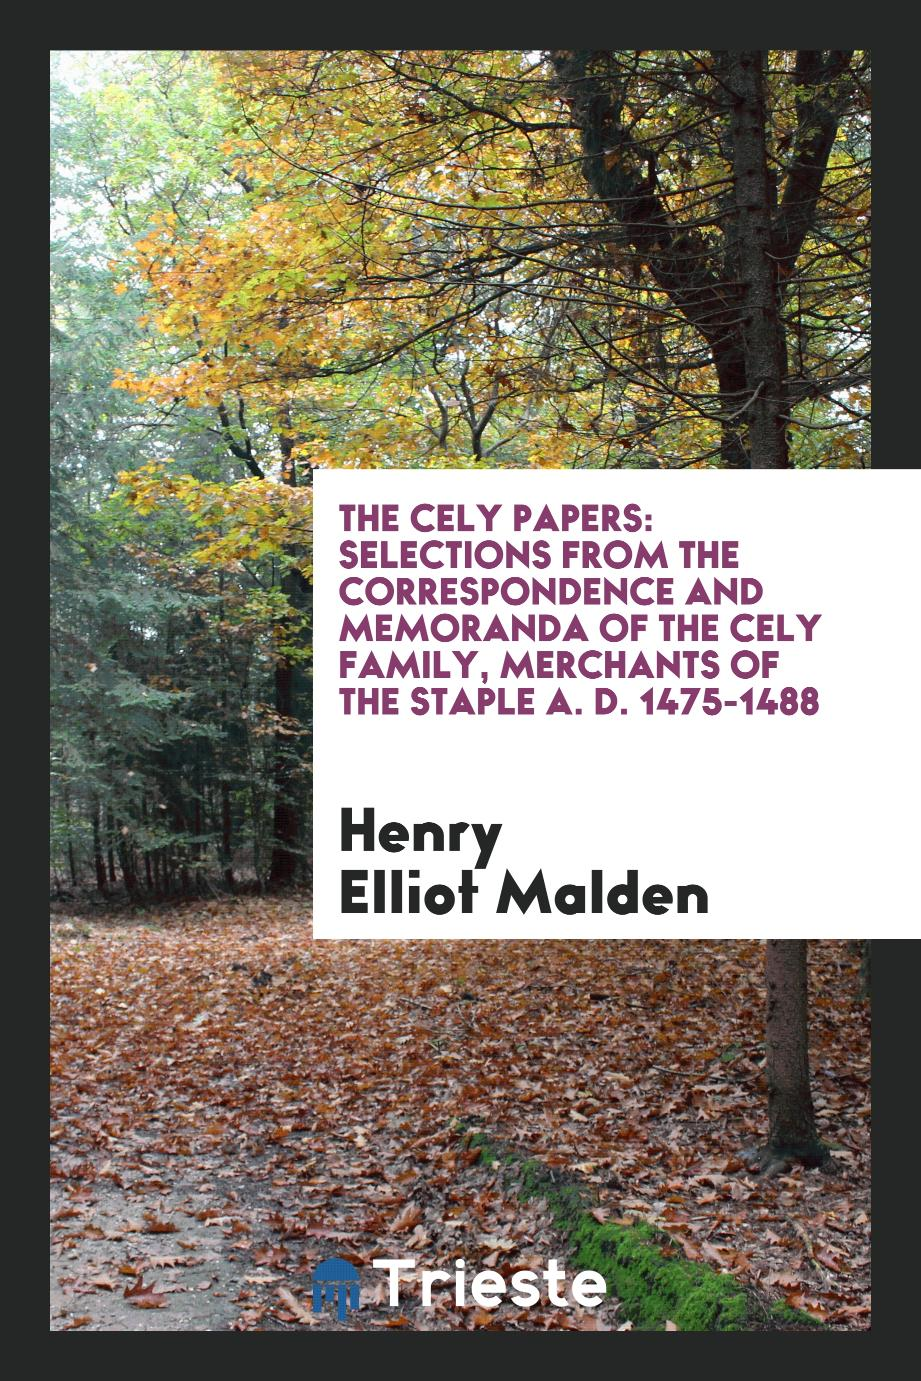 The Cely Papers: Selections from the Correspondence and Memoranda of the Cely Family, Merchants of the Staple A. D. 1475-1488